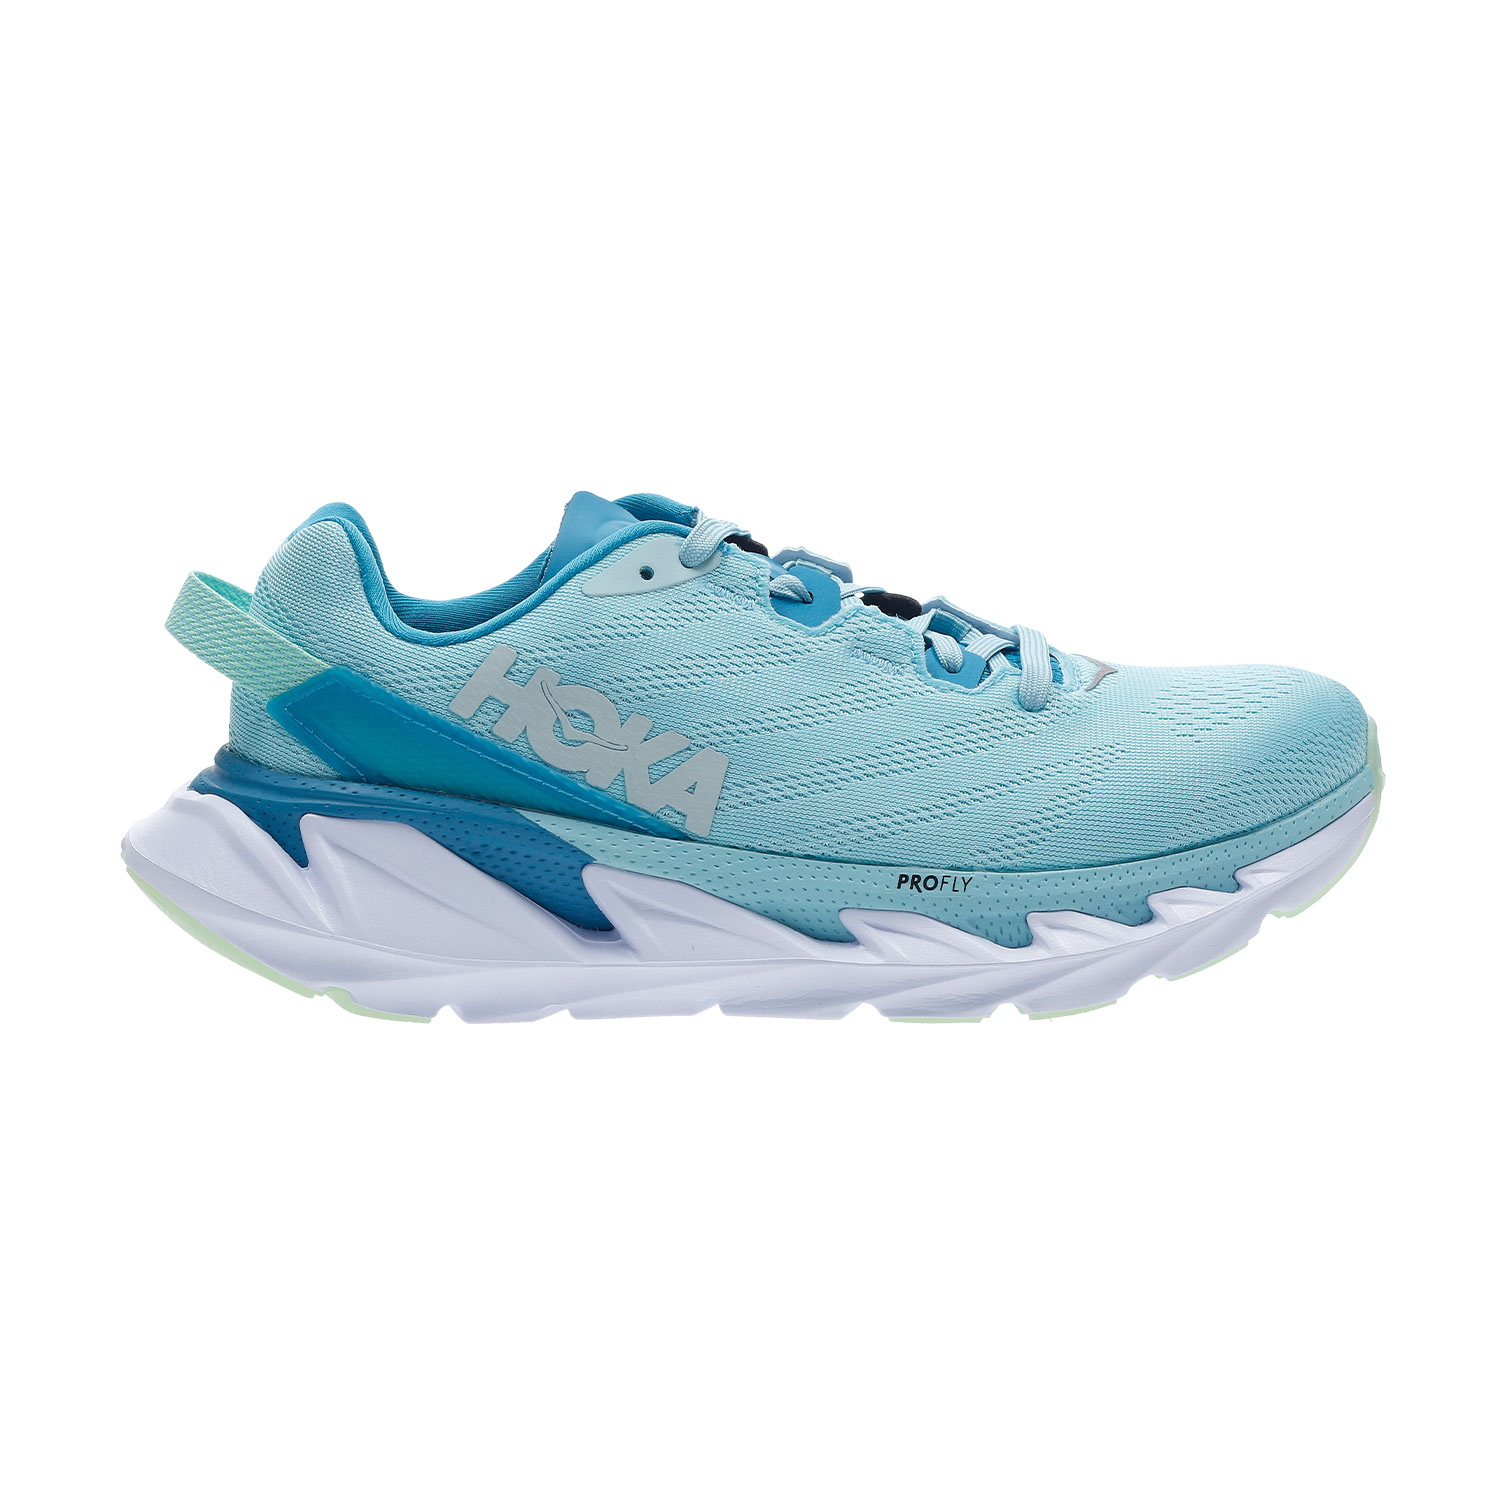 Hoka One One Elevon 2 - Antigua Sand/Caribbean Sea